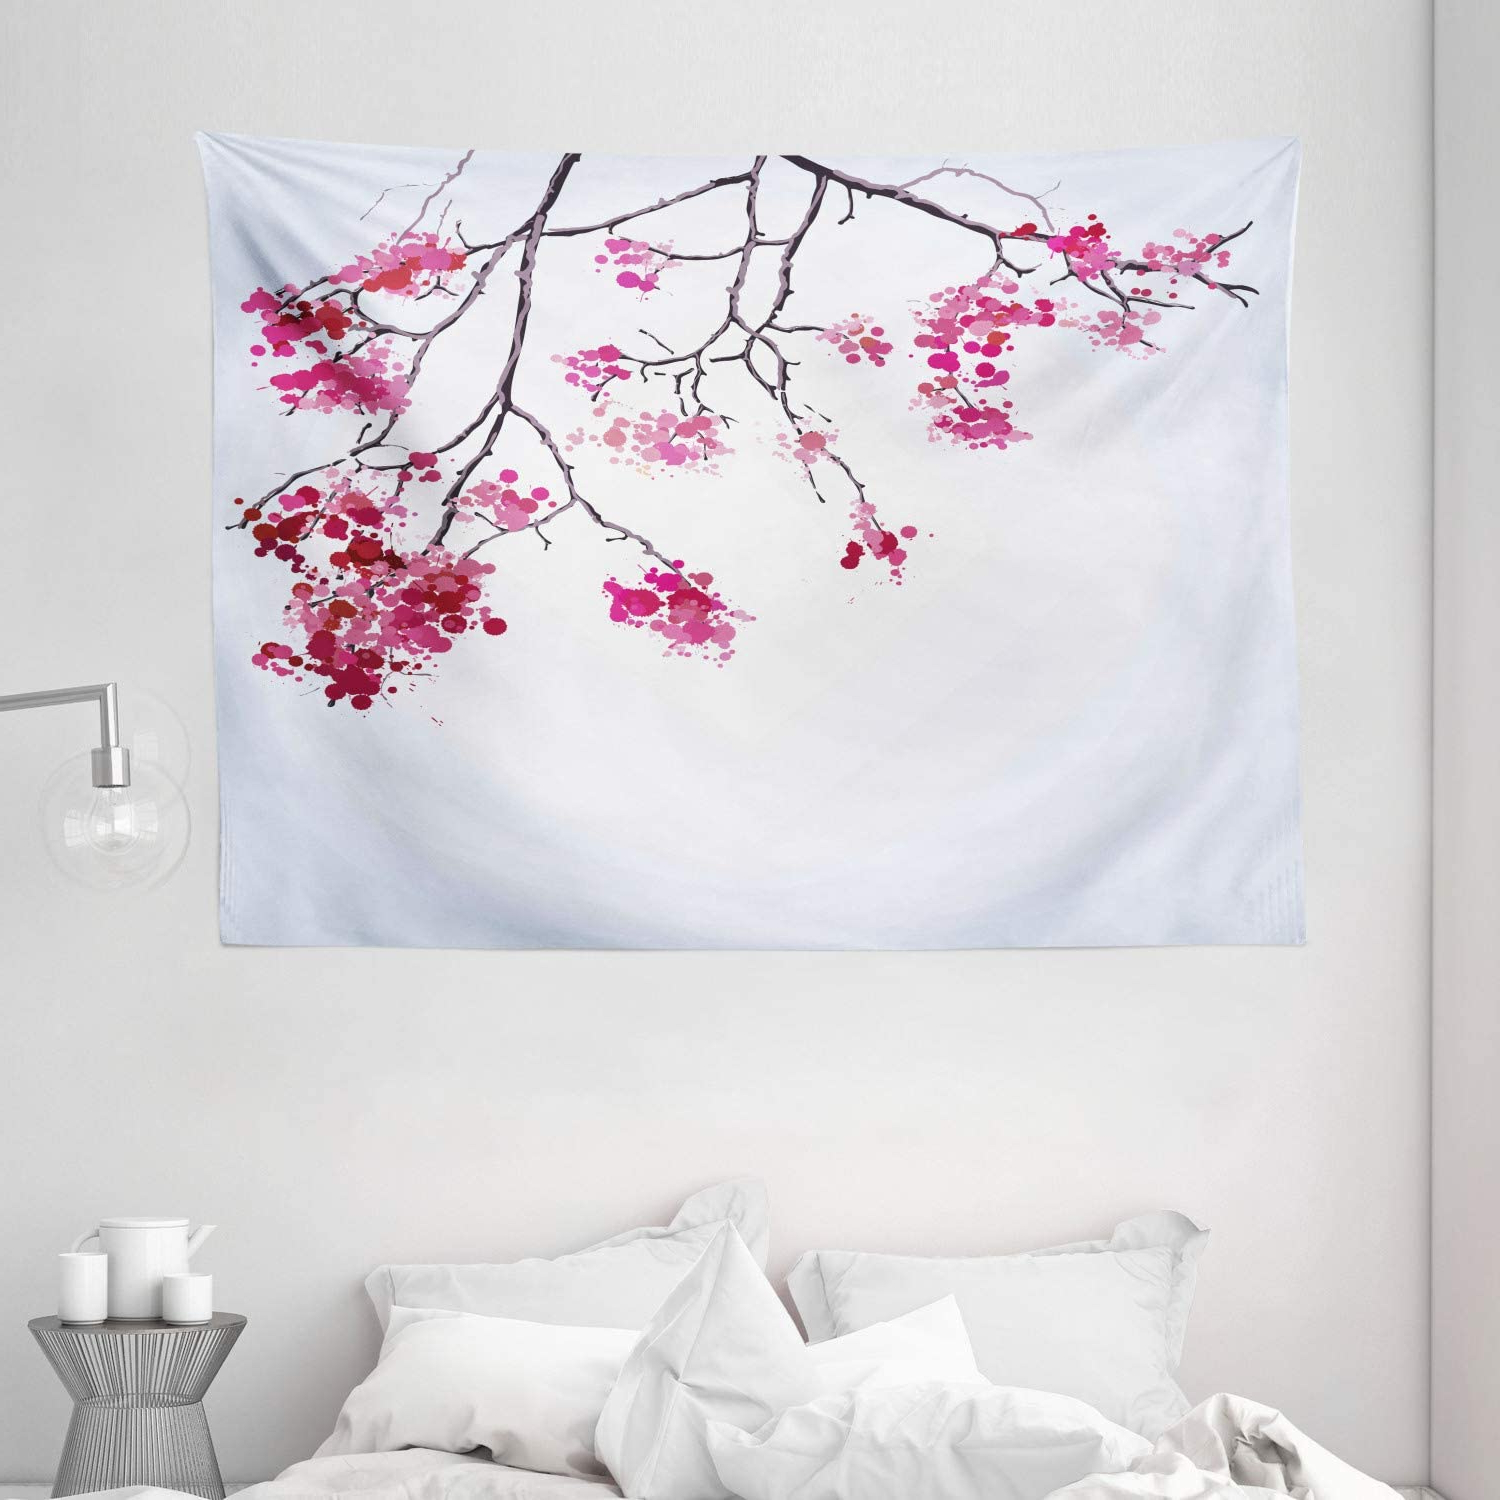 """Blended Fabric Spring Blossom Tapestries Within 2020 Ambesonne Japanese Tapestry, Cherry Blossom Sakura Tree Floral Branch Spring Season Theme Image, Wide Wall Hanging For Bedroom Living Room Dorm, 80"""" X (View 2 of 20)"""